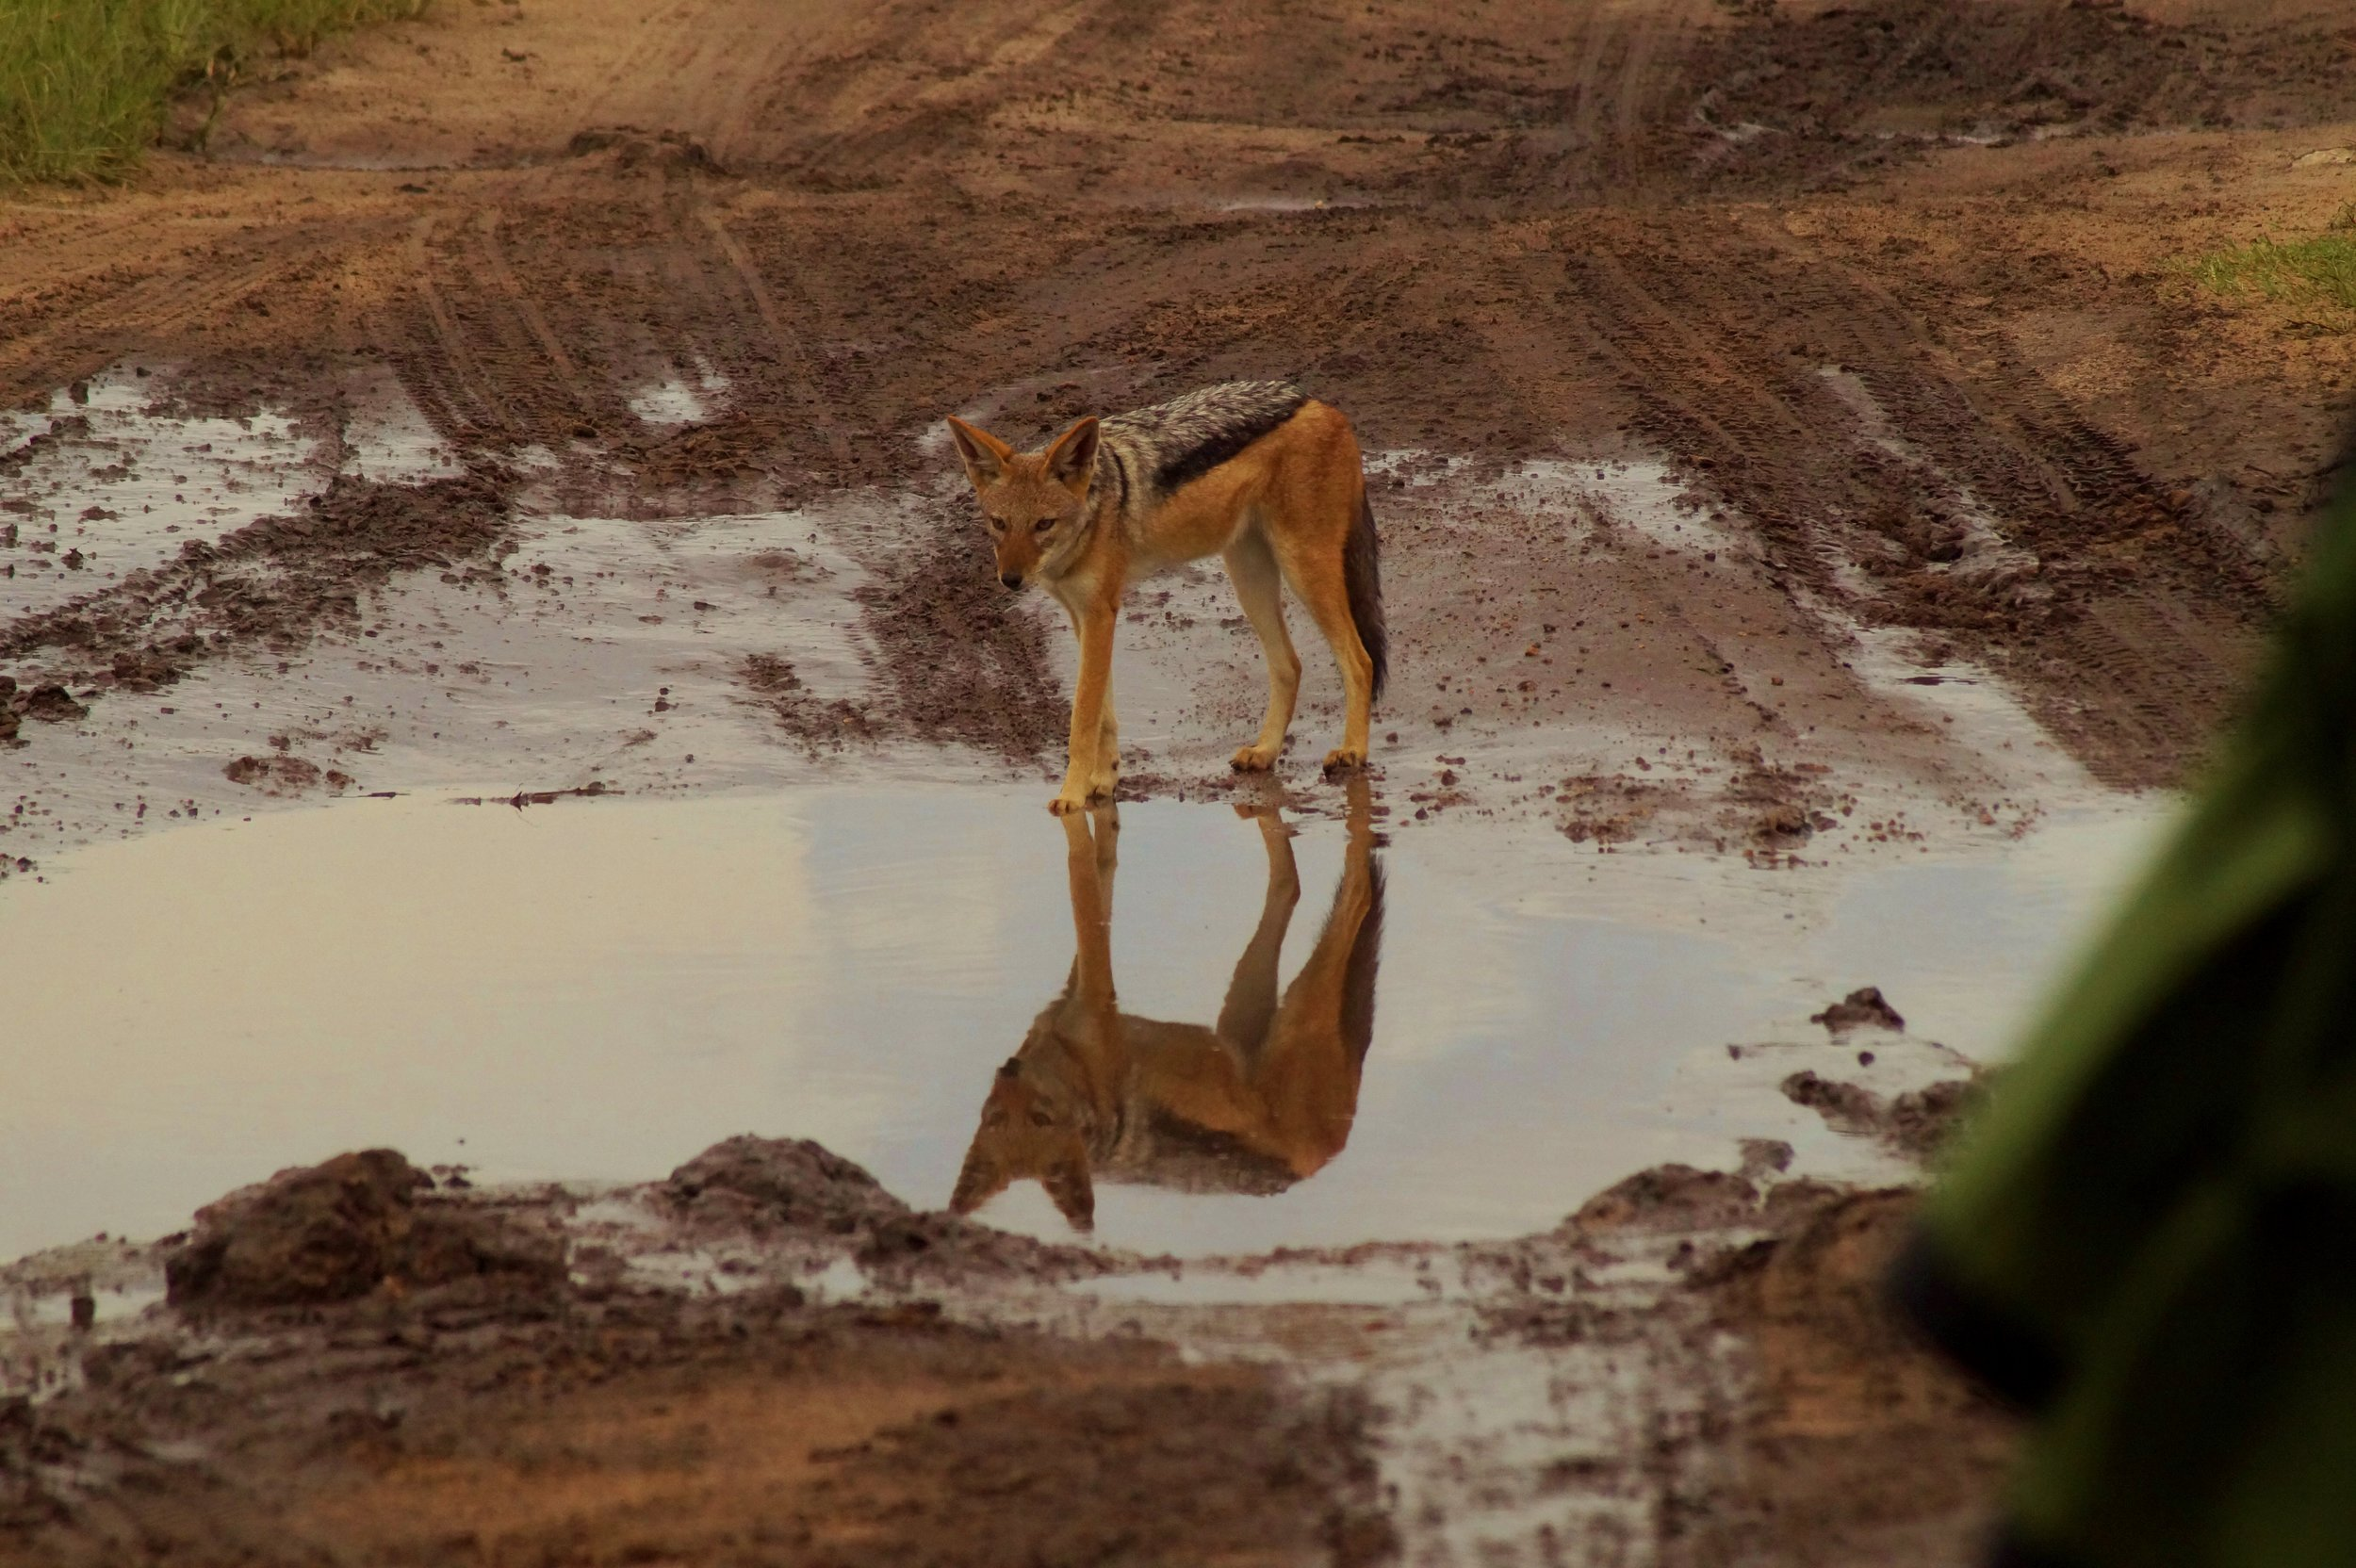 A Black Backed Jackal about to have a drink of water from one of the many puddles from the recent rains.